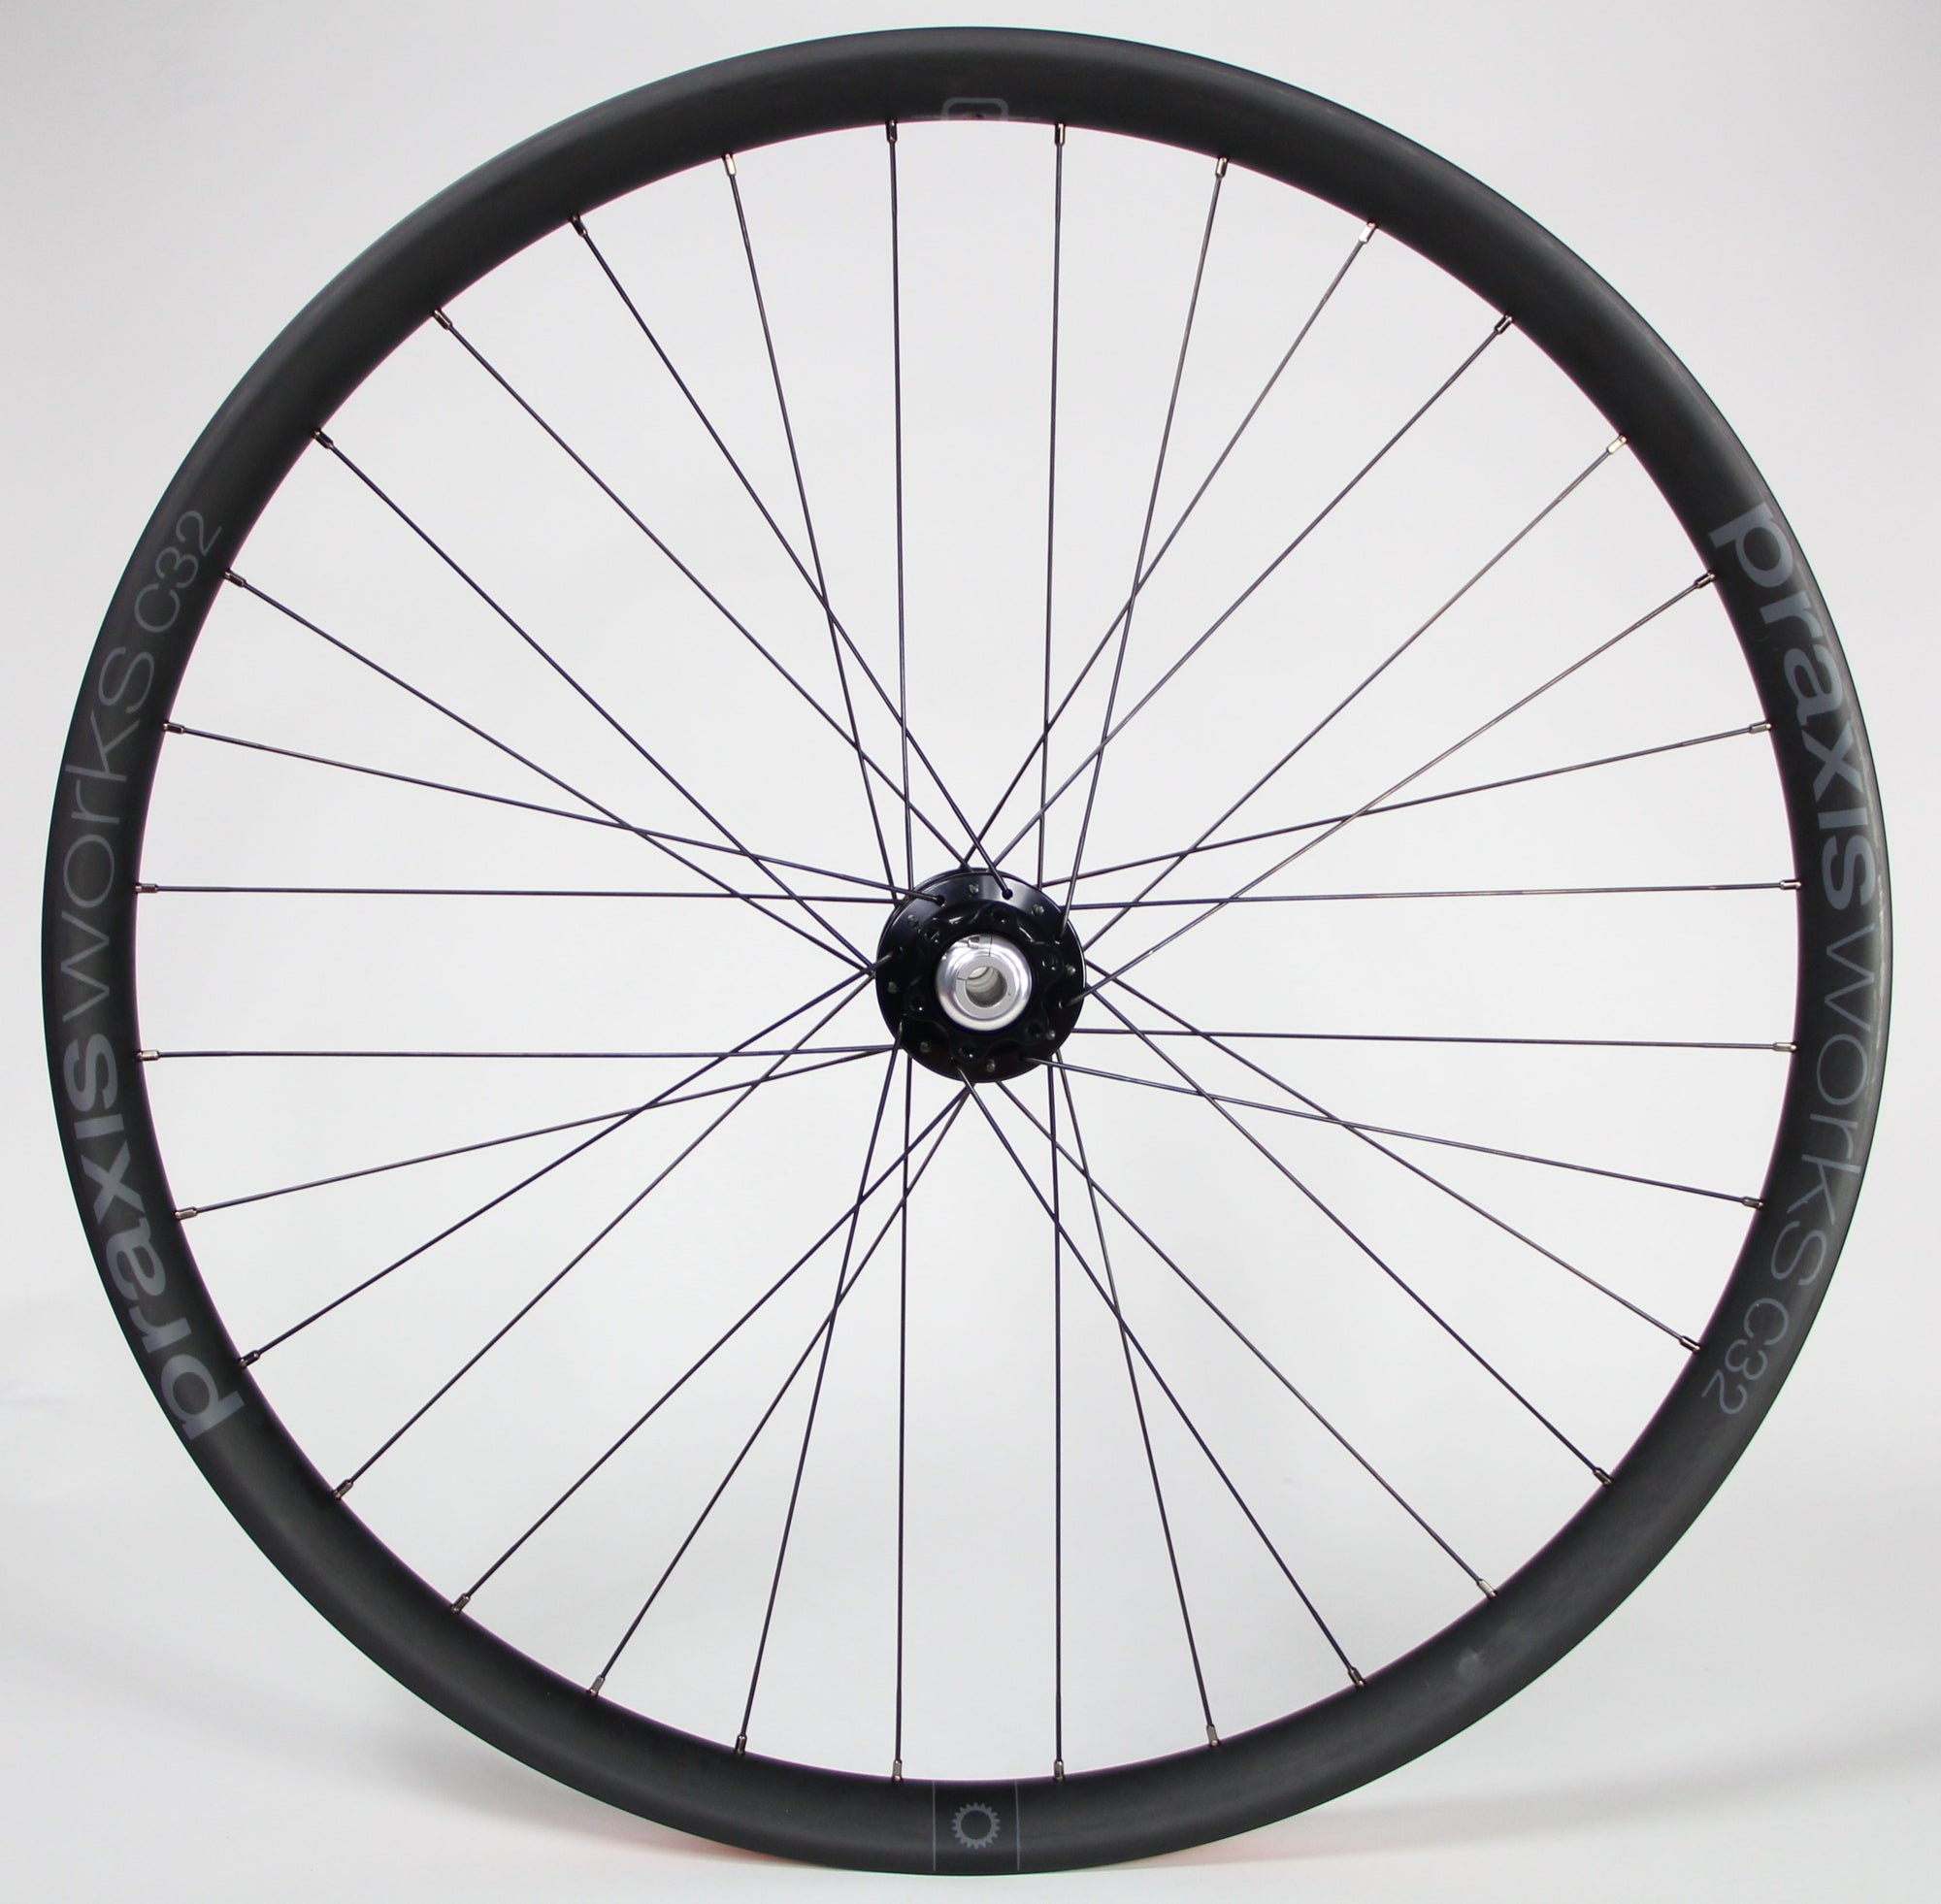 Chris King / PRAXIS C32 AVTWorks Carbon Wheel Review